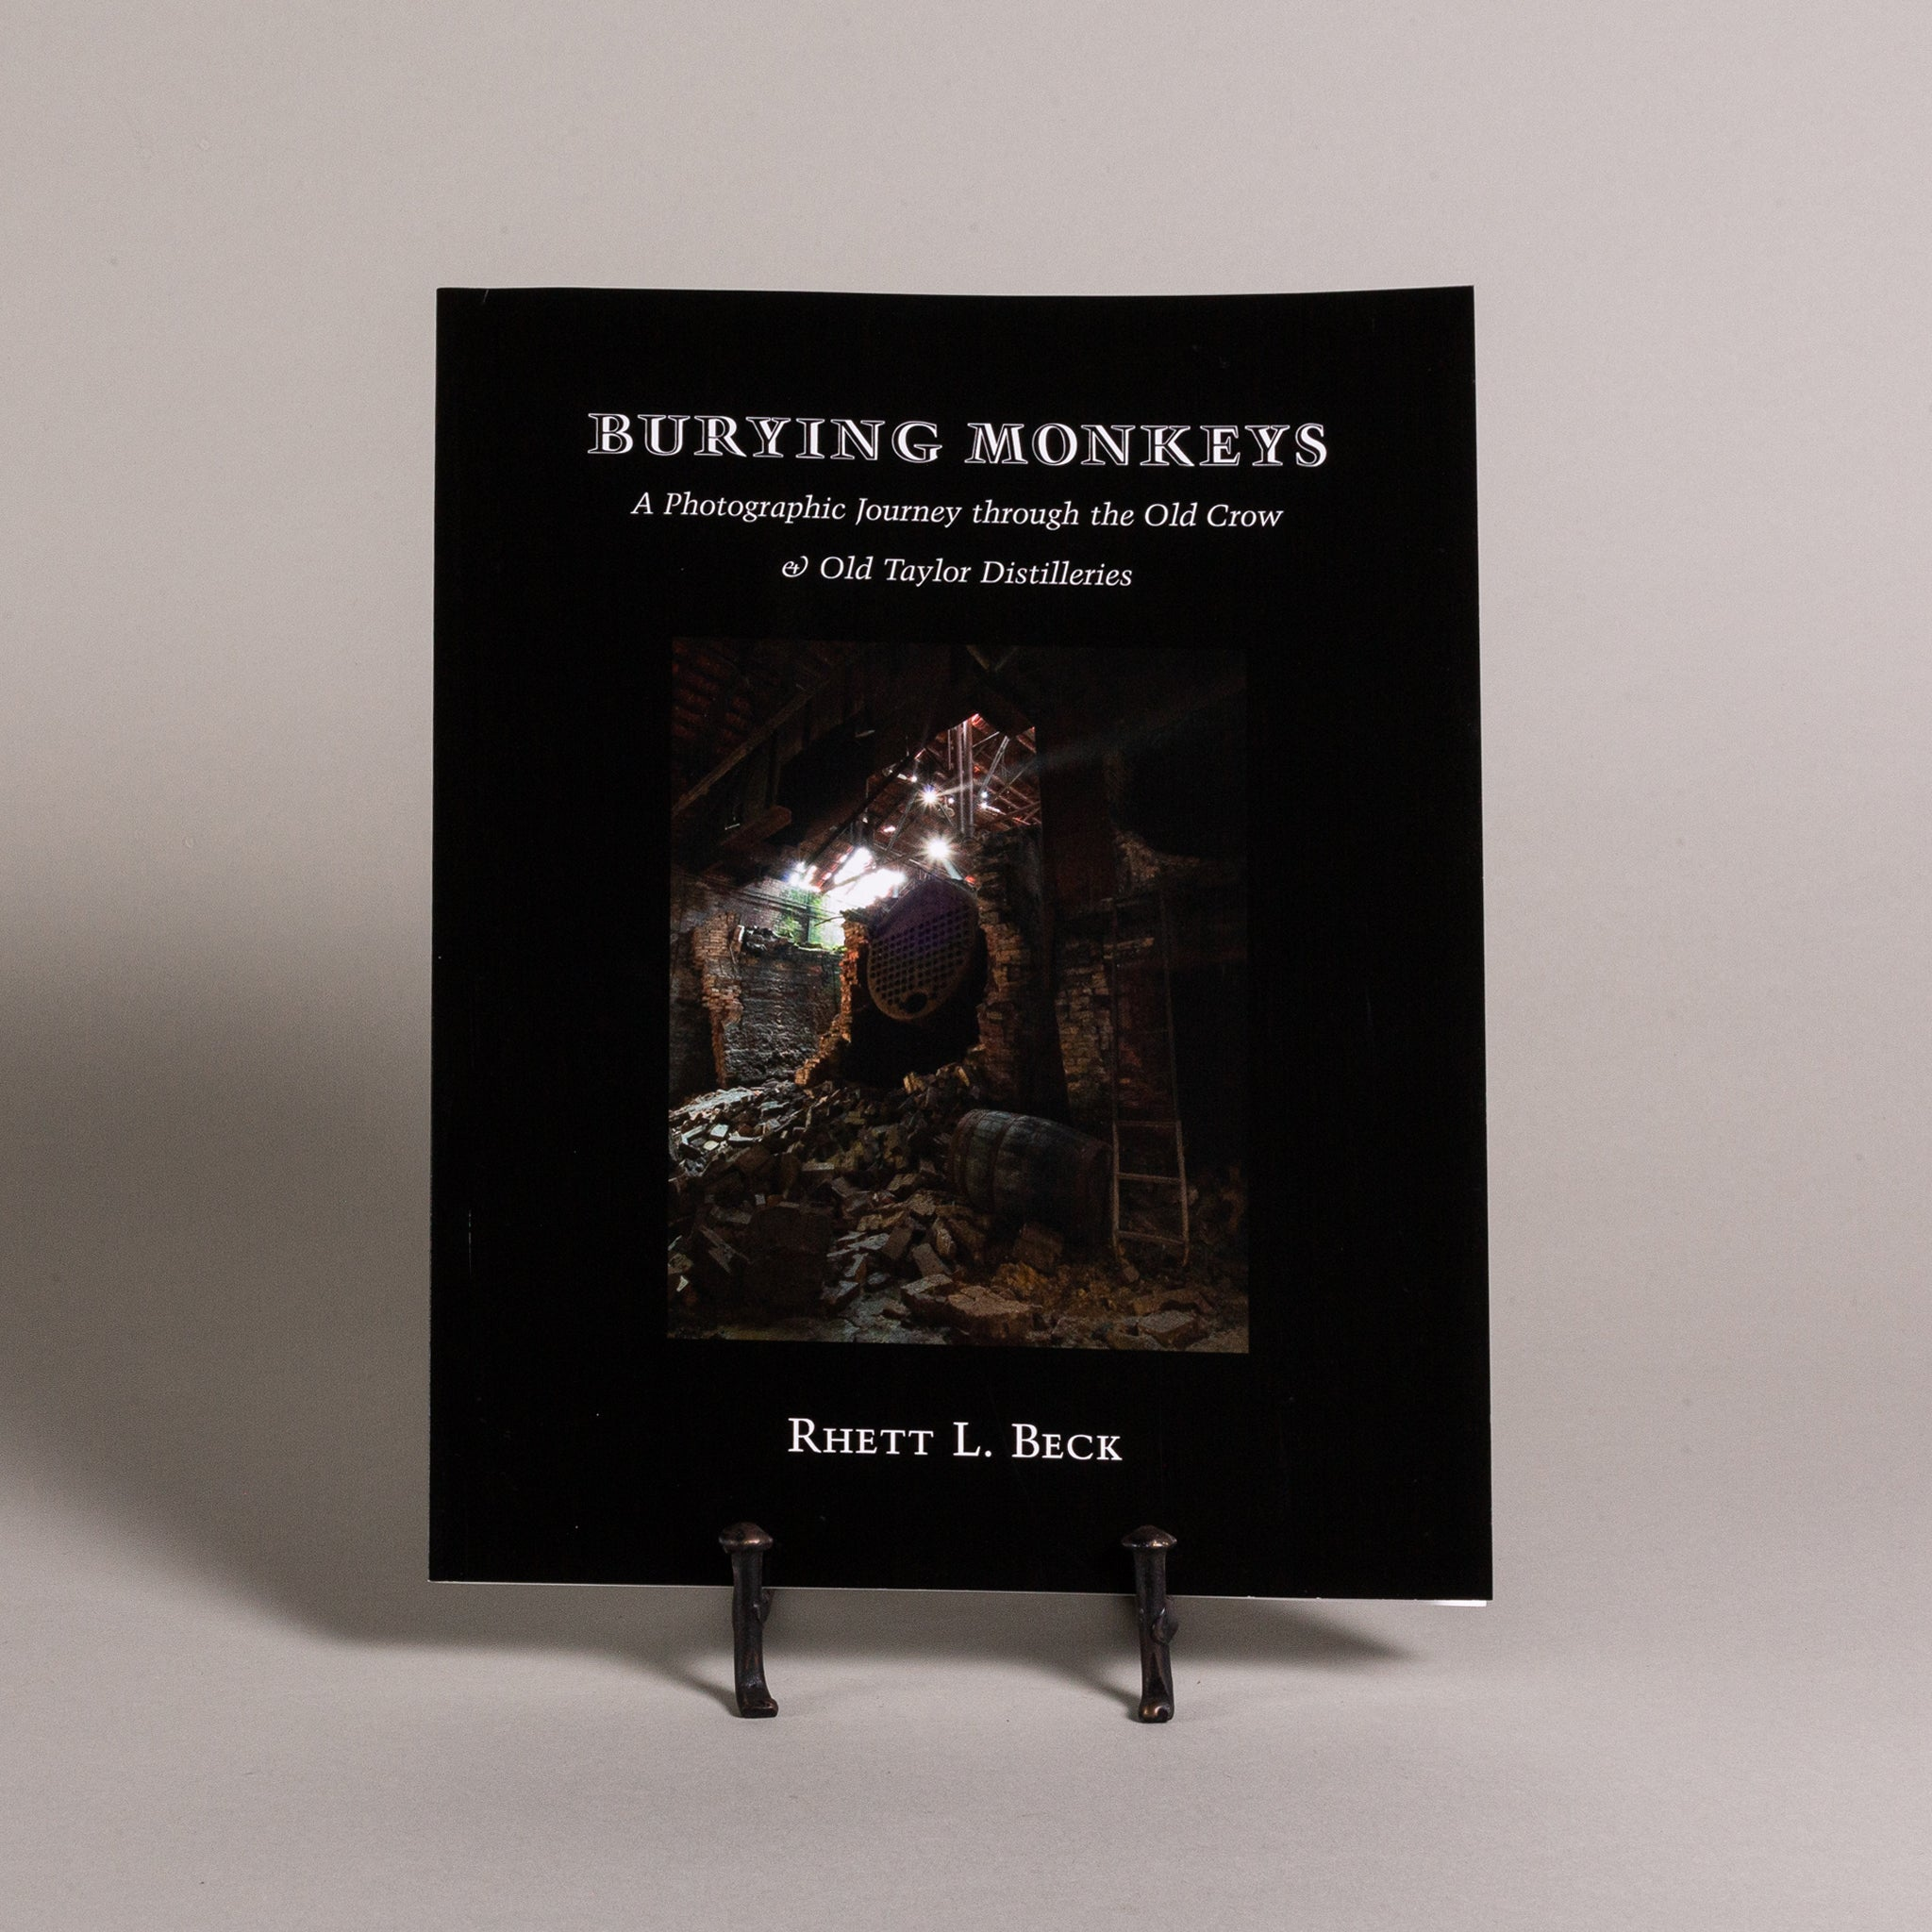 Burying Monkeys by Rhett Beck